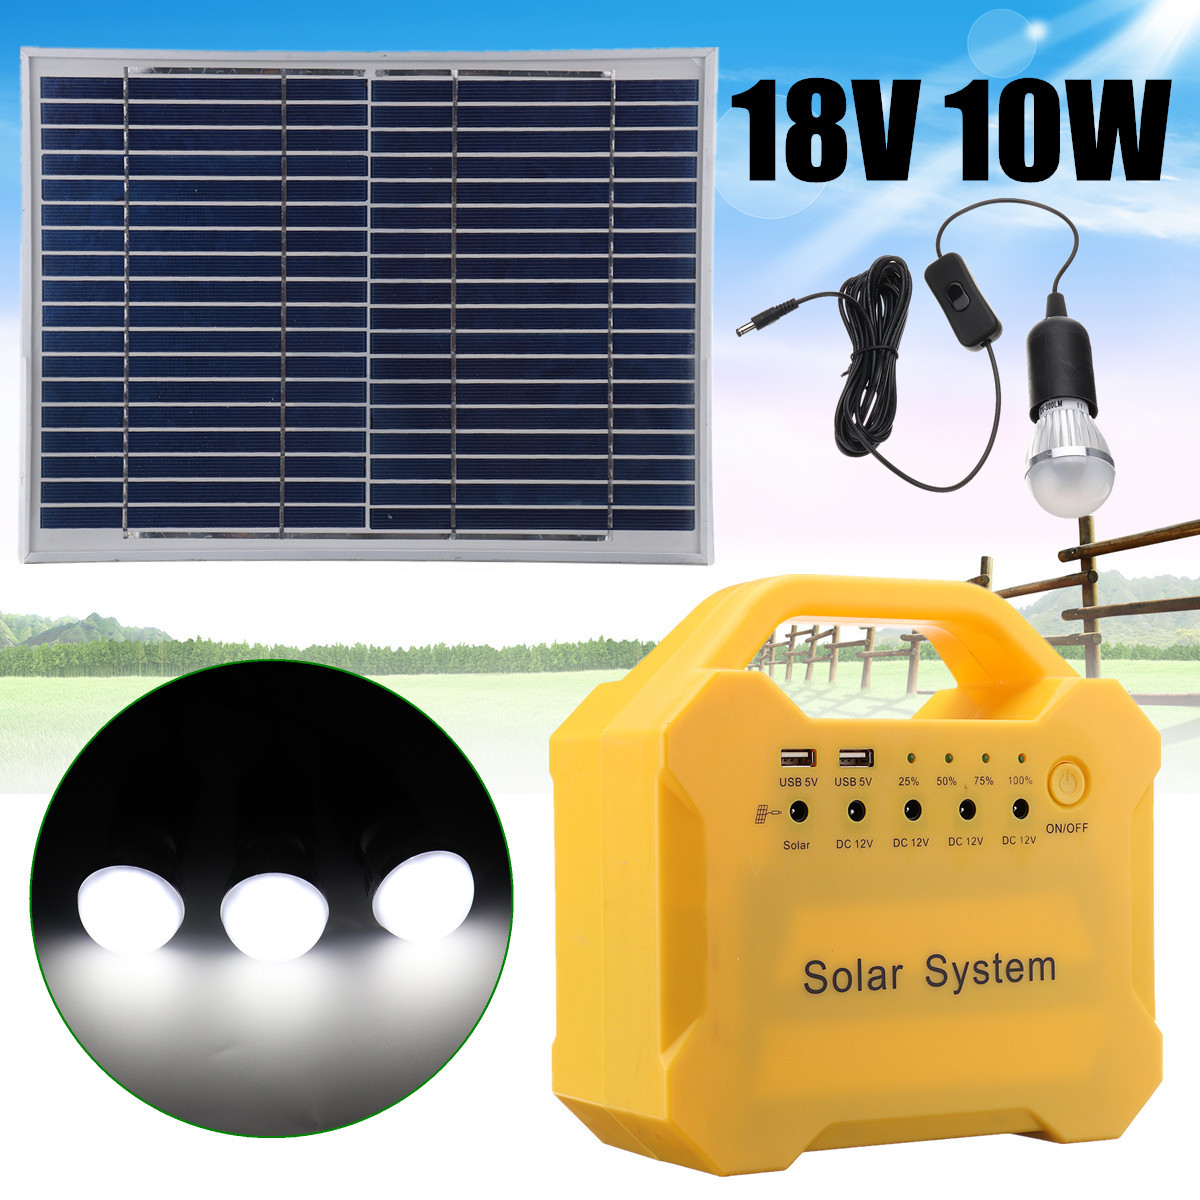 18V LED Light USB Charge Solar Panel Power Storage Generator System Home Outdoor Large Capacity Battery Energy Saving Camping hoox c02 magic stone series 6000mah polymer power bank dual usb quick charge energy saving green